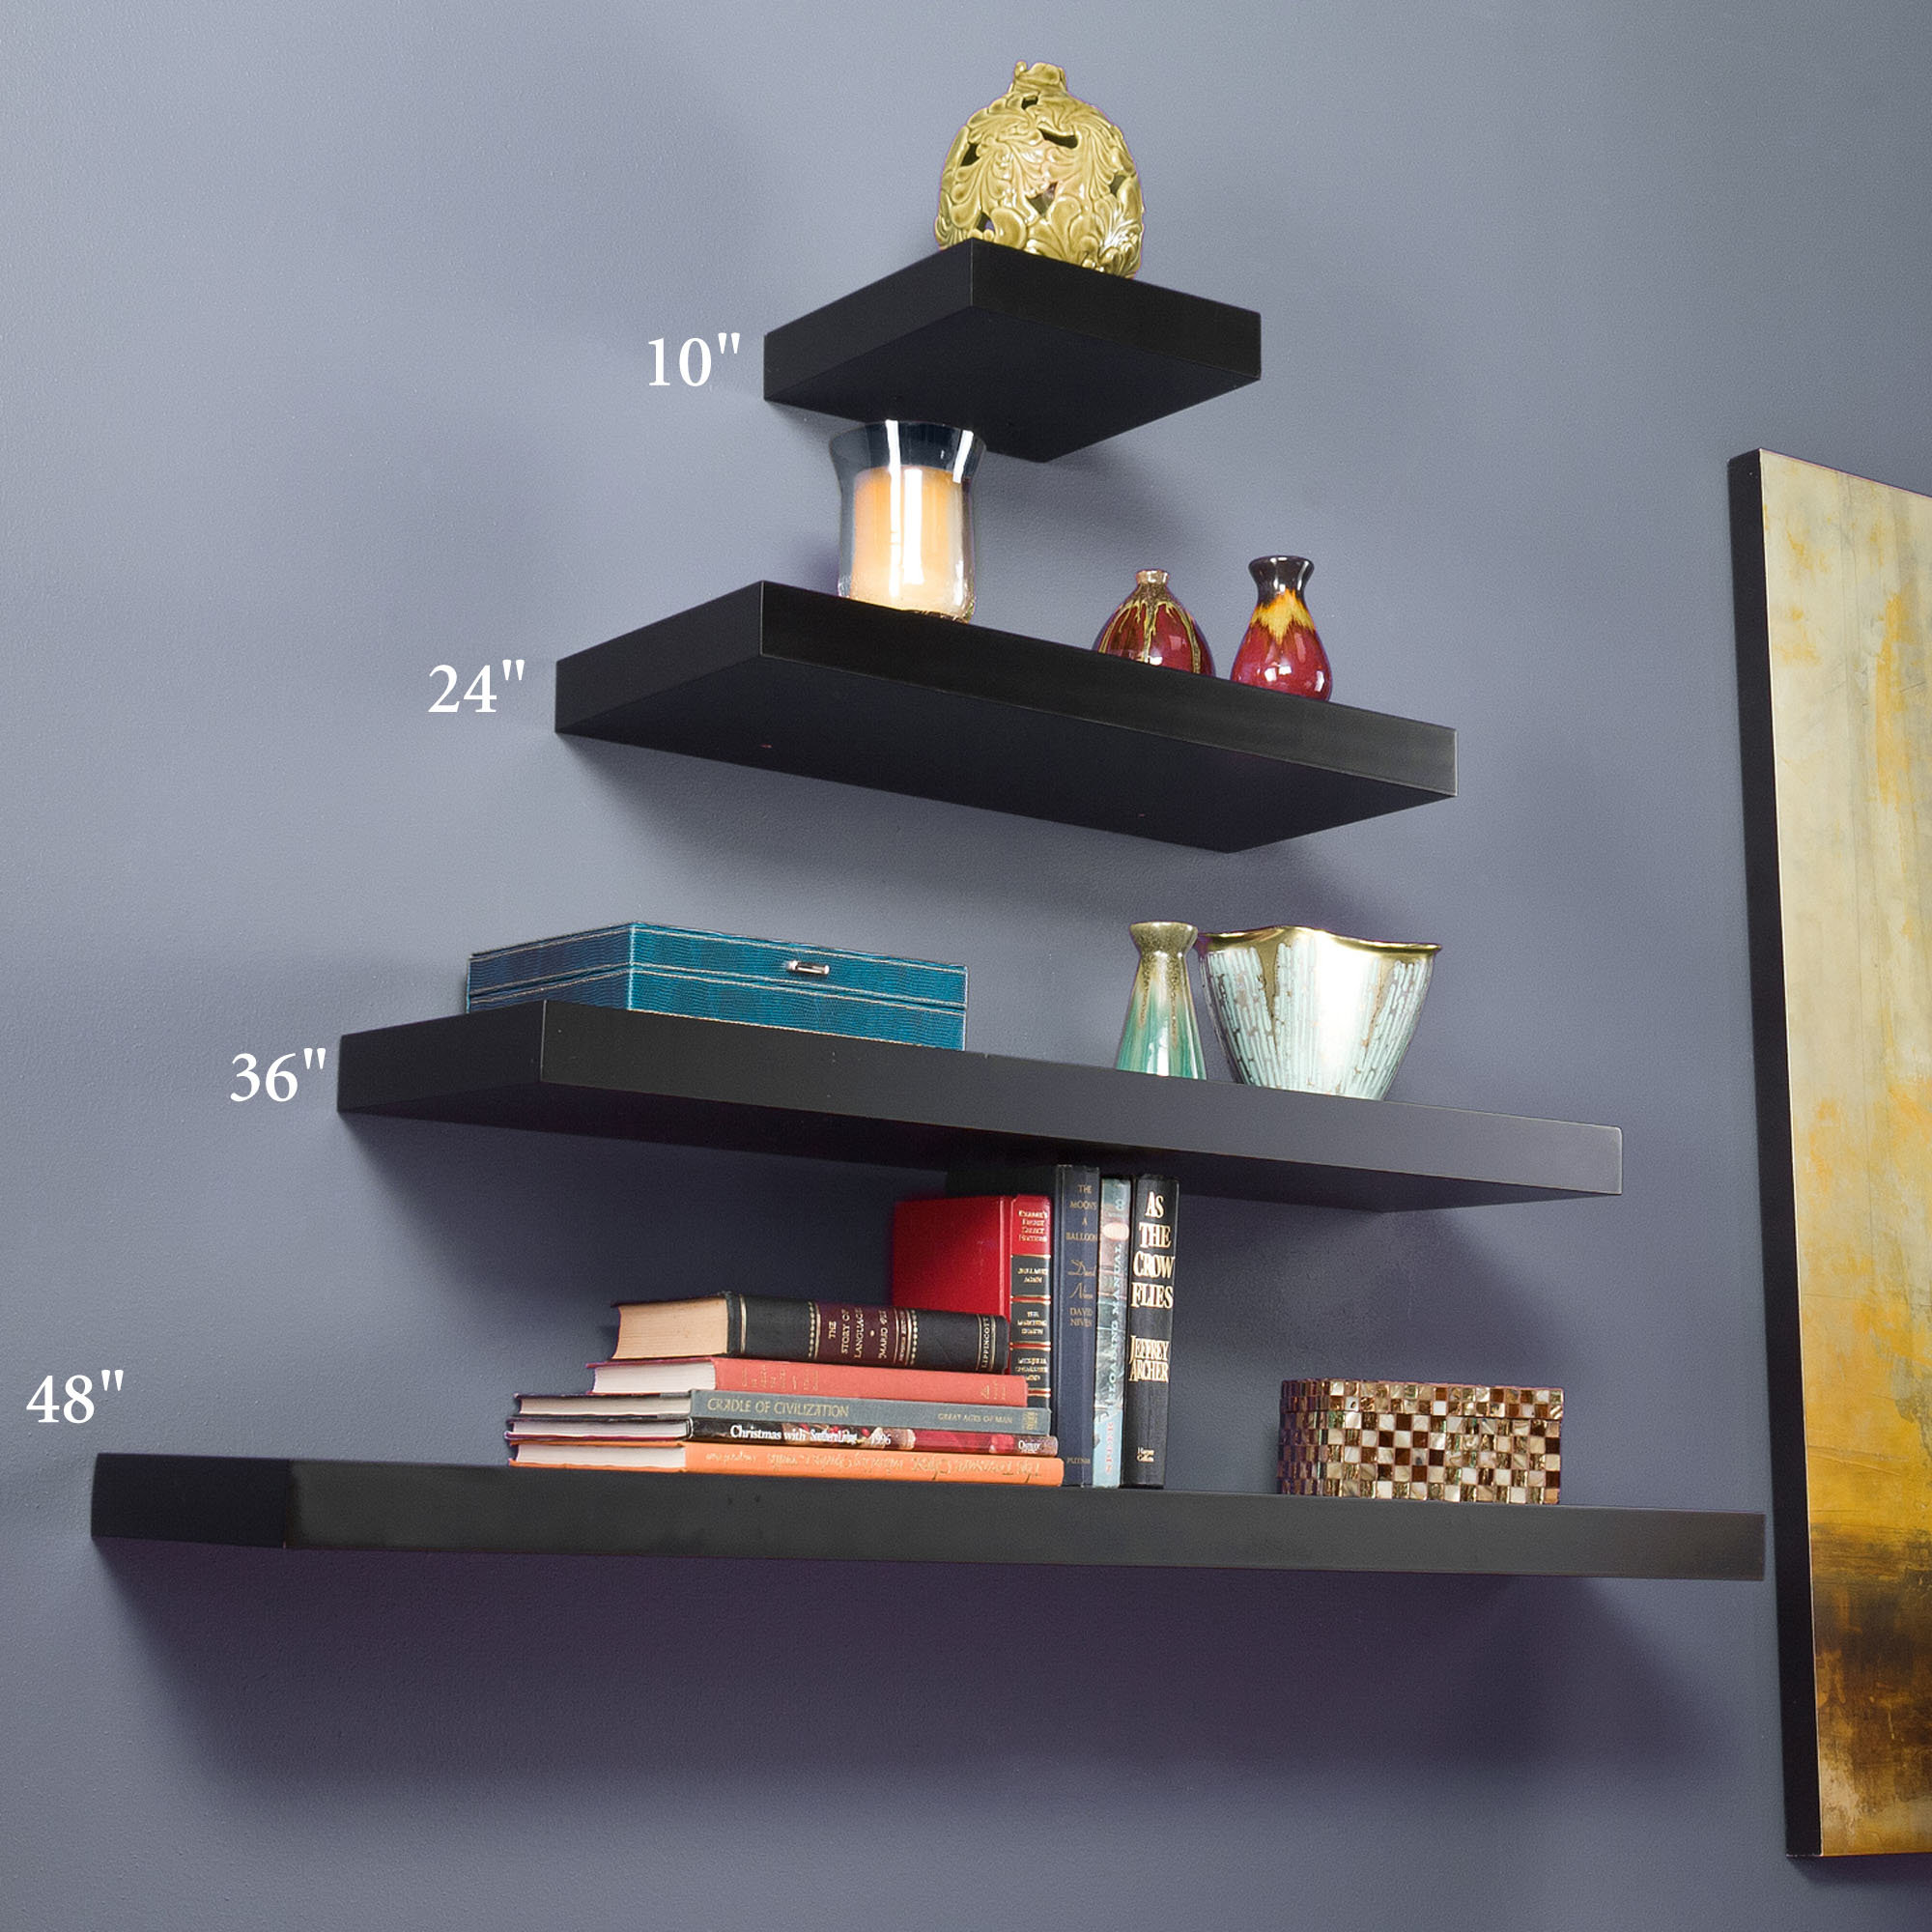 Appealing Design Of The Blu Grey Wall Added With Some Levels Of The Black Wooden Floating Wall Shelf